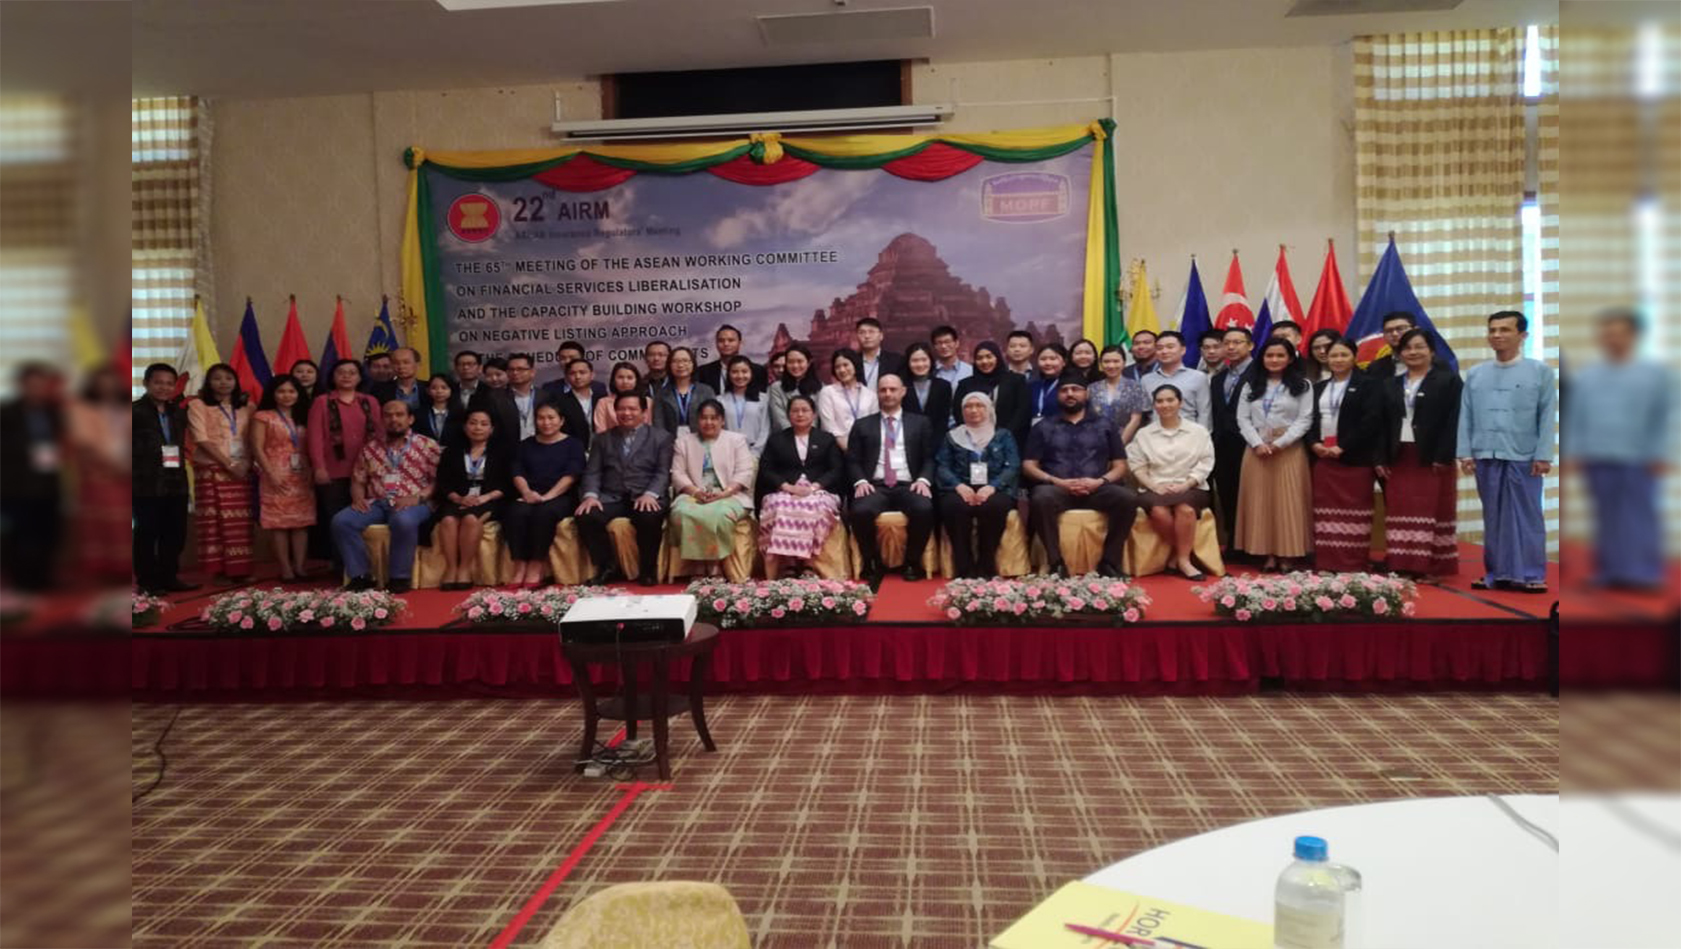 65th WC-FSL Meeting, 25 – 26 November 2019, Nay Pyi Taw, Myanmar